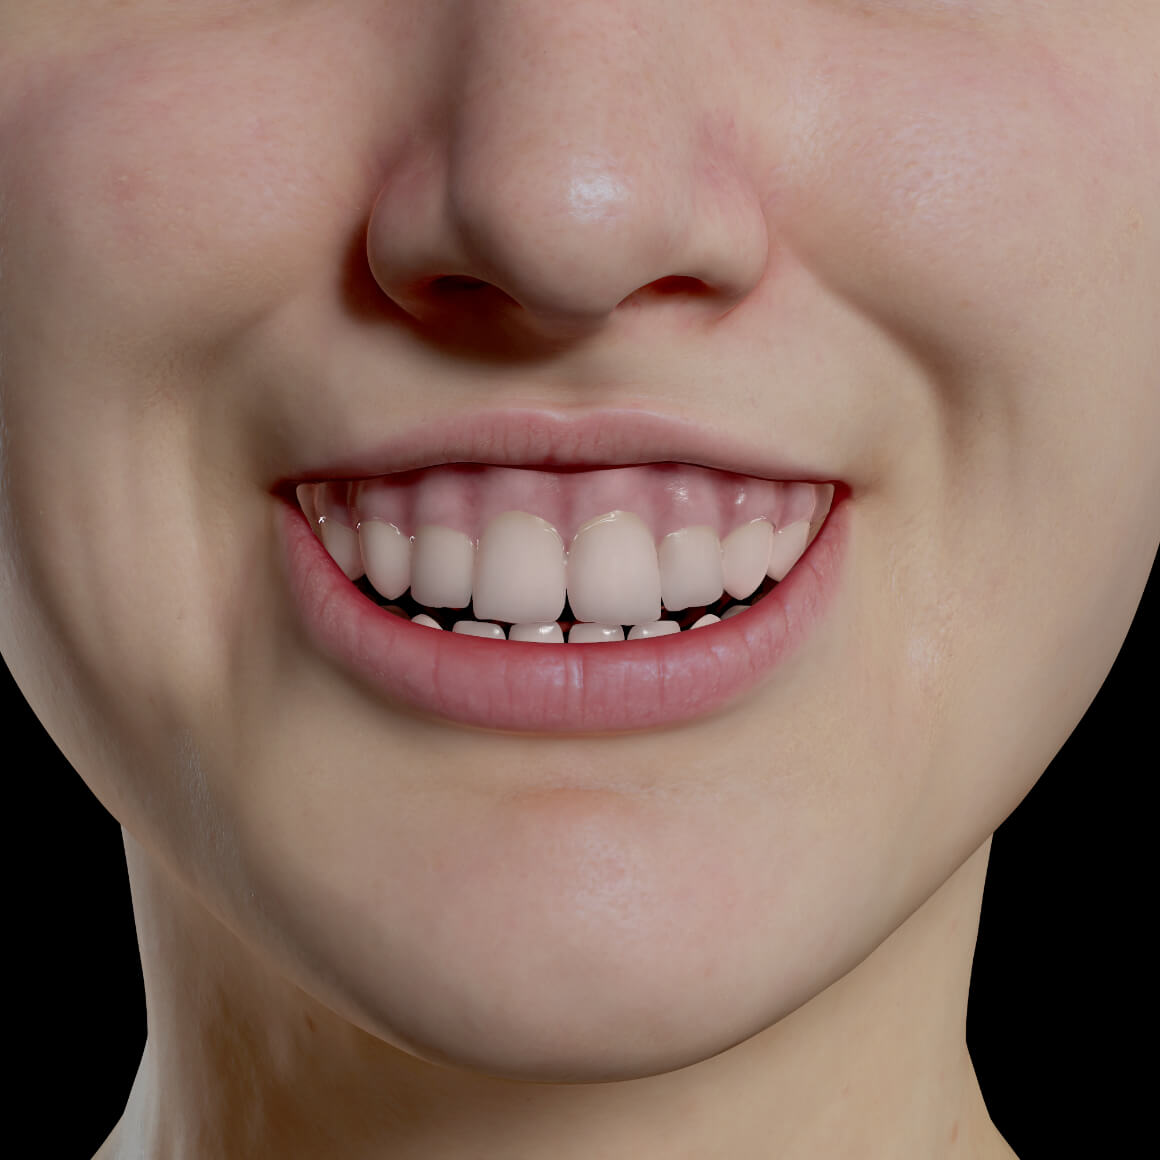 Gummy smile of a female patient from Clinique Chloé facing front